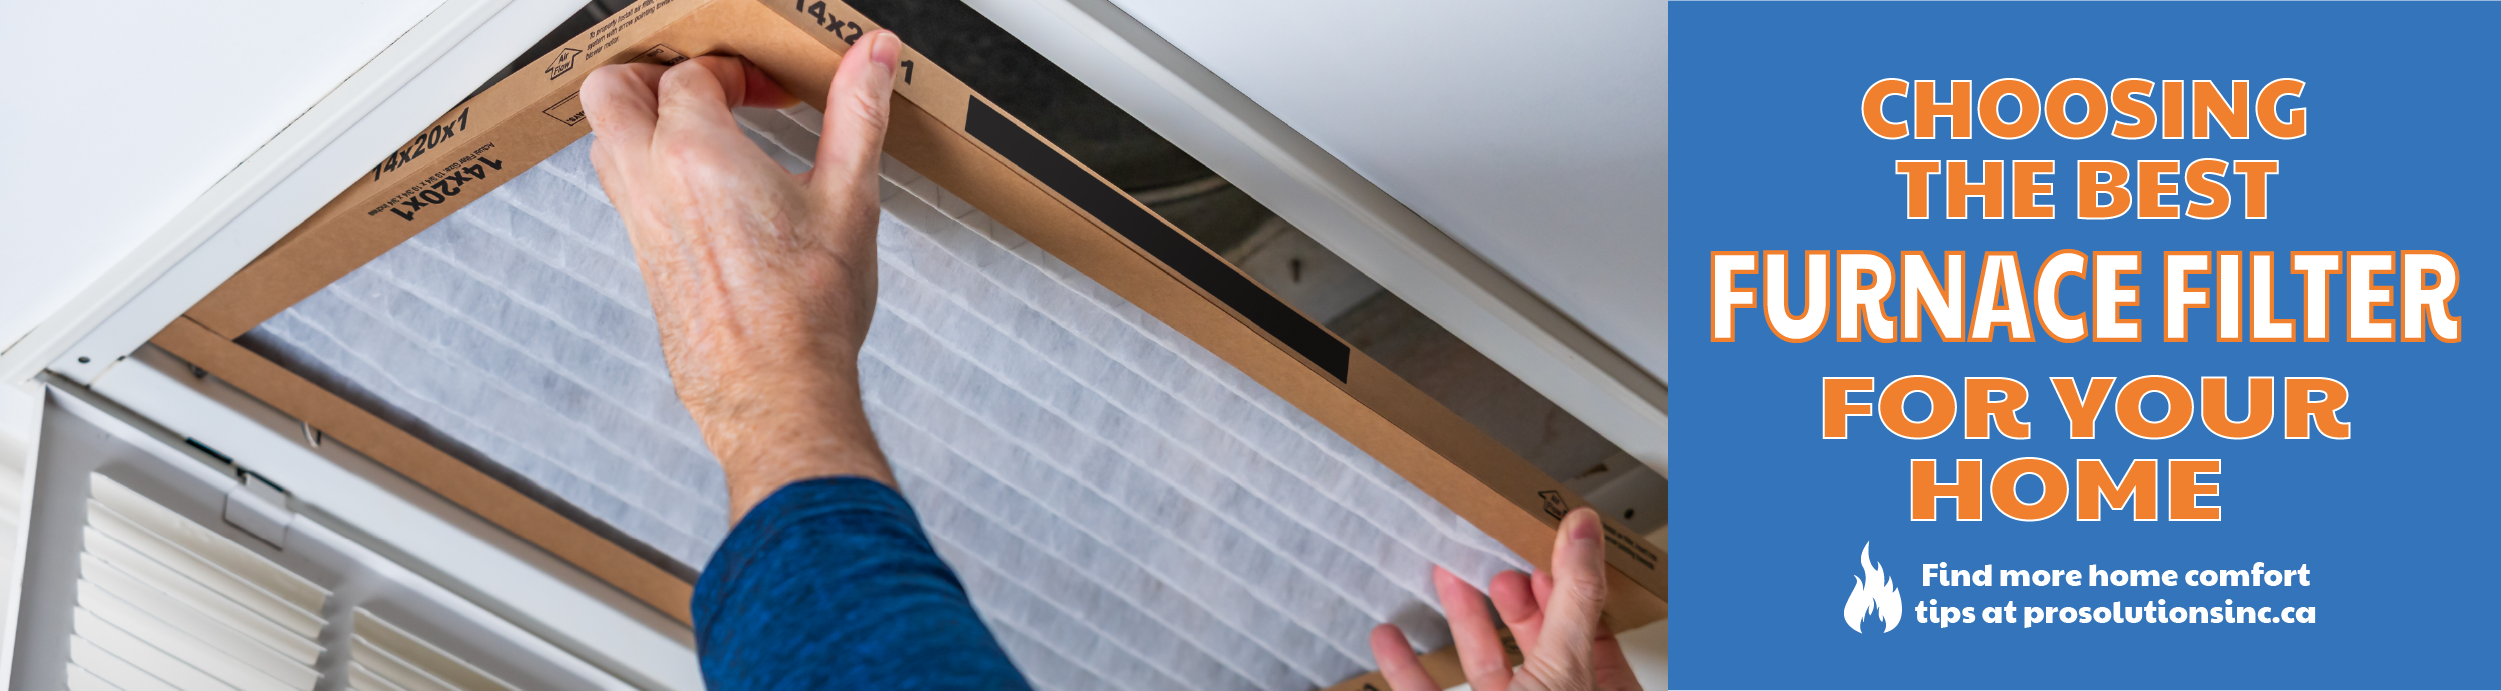 What type of furnace filter to choose